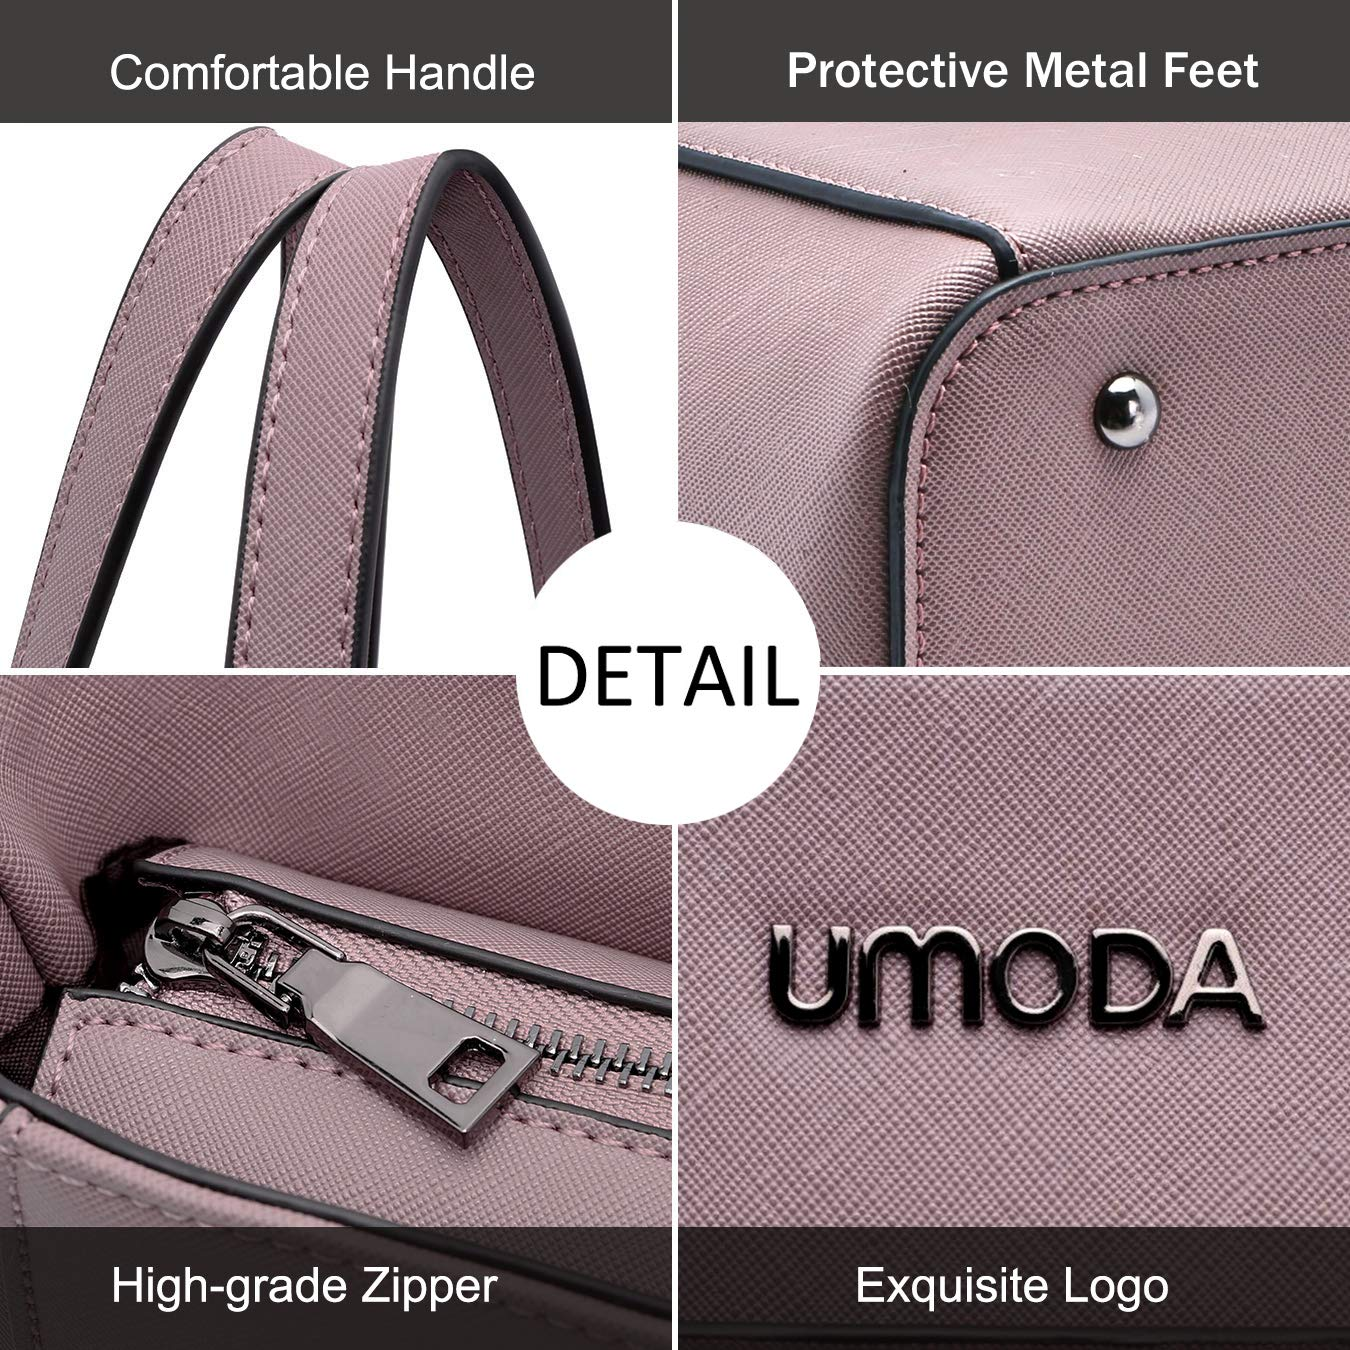 Laptop Bag for Woman,13-15.6 Inch Laptop Tote Bag Briefcase with Padded Compartment, Best [Purple] by UMODA (Image #3)